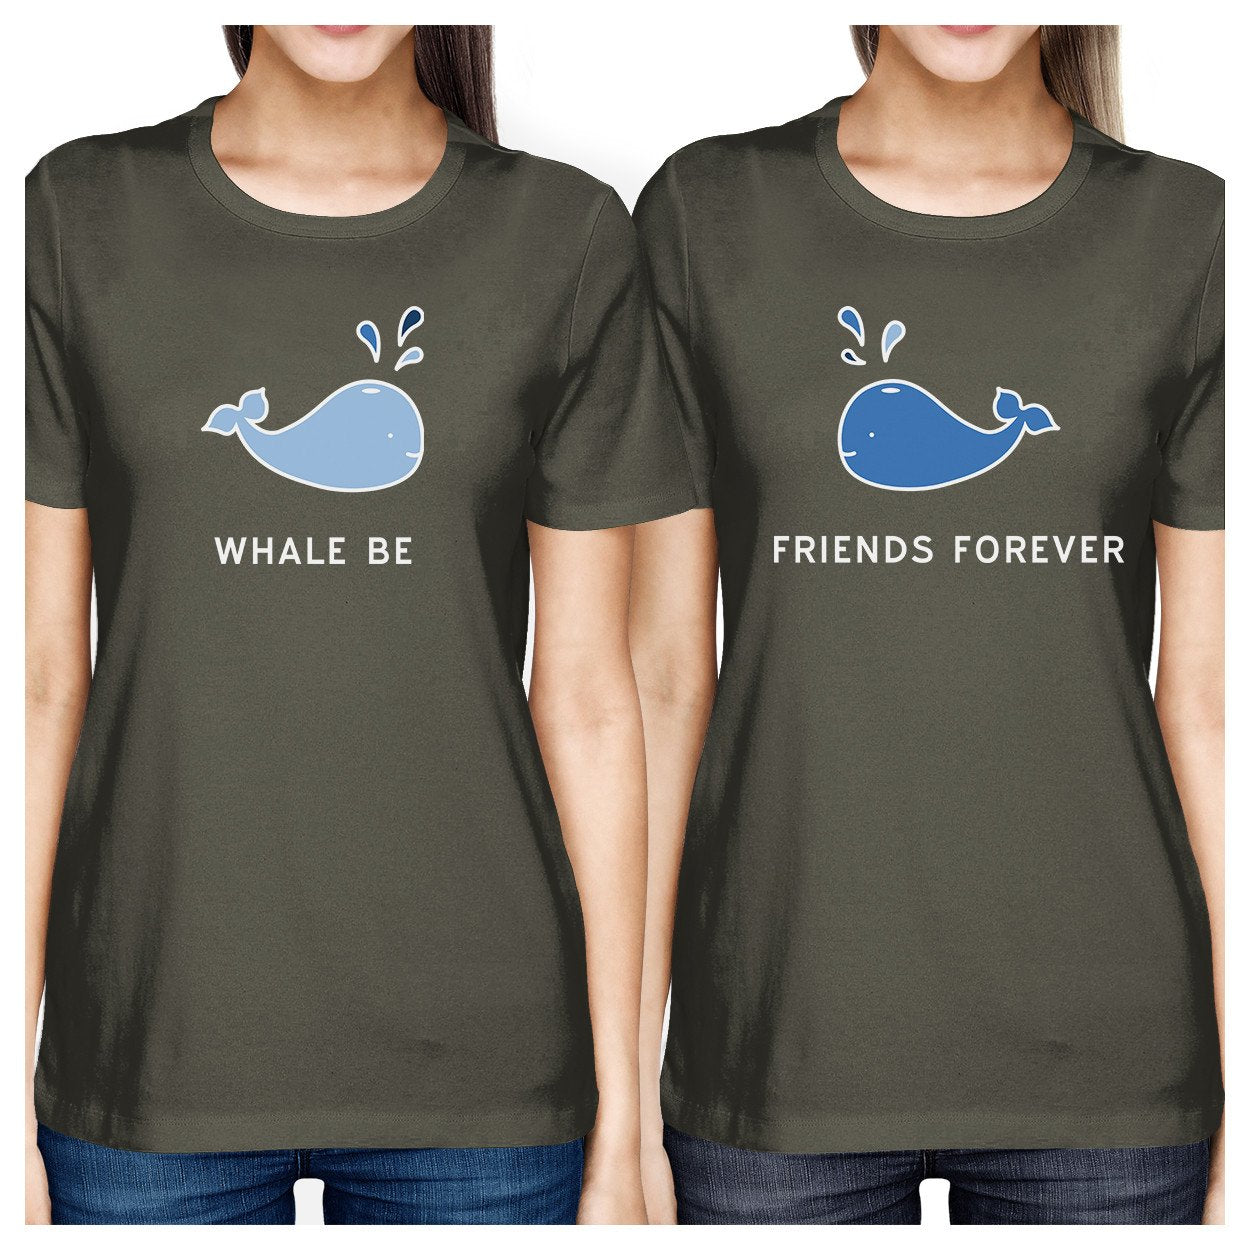 Whale Be Friend Forever BFF Matching Tee Lightweight Summer Top